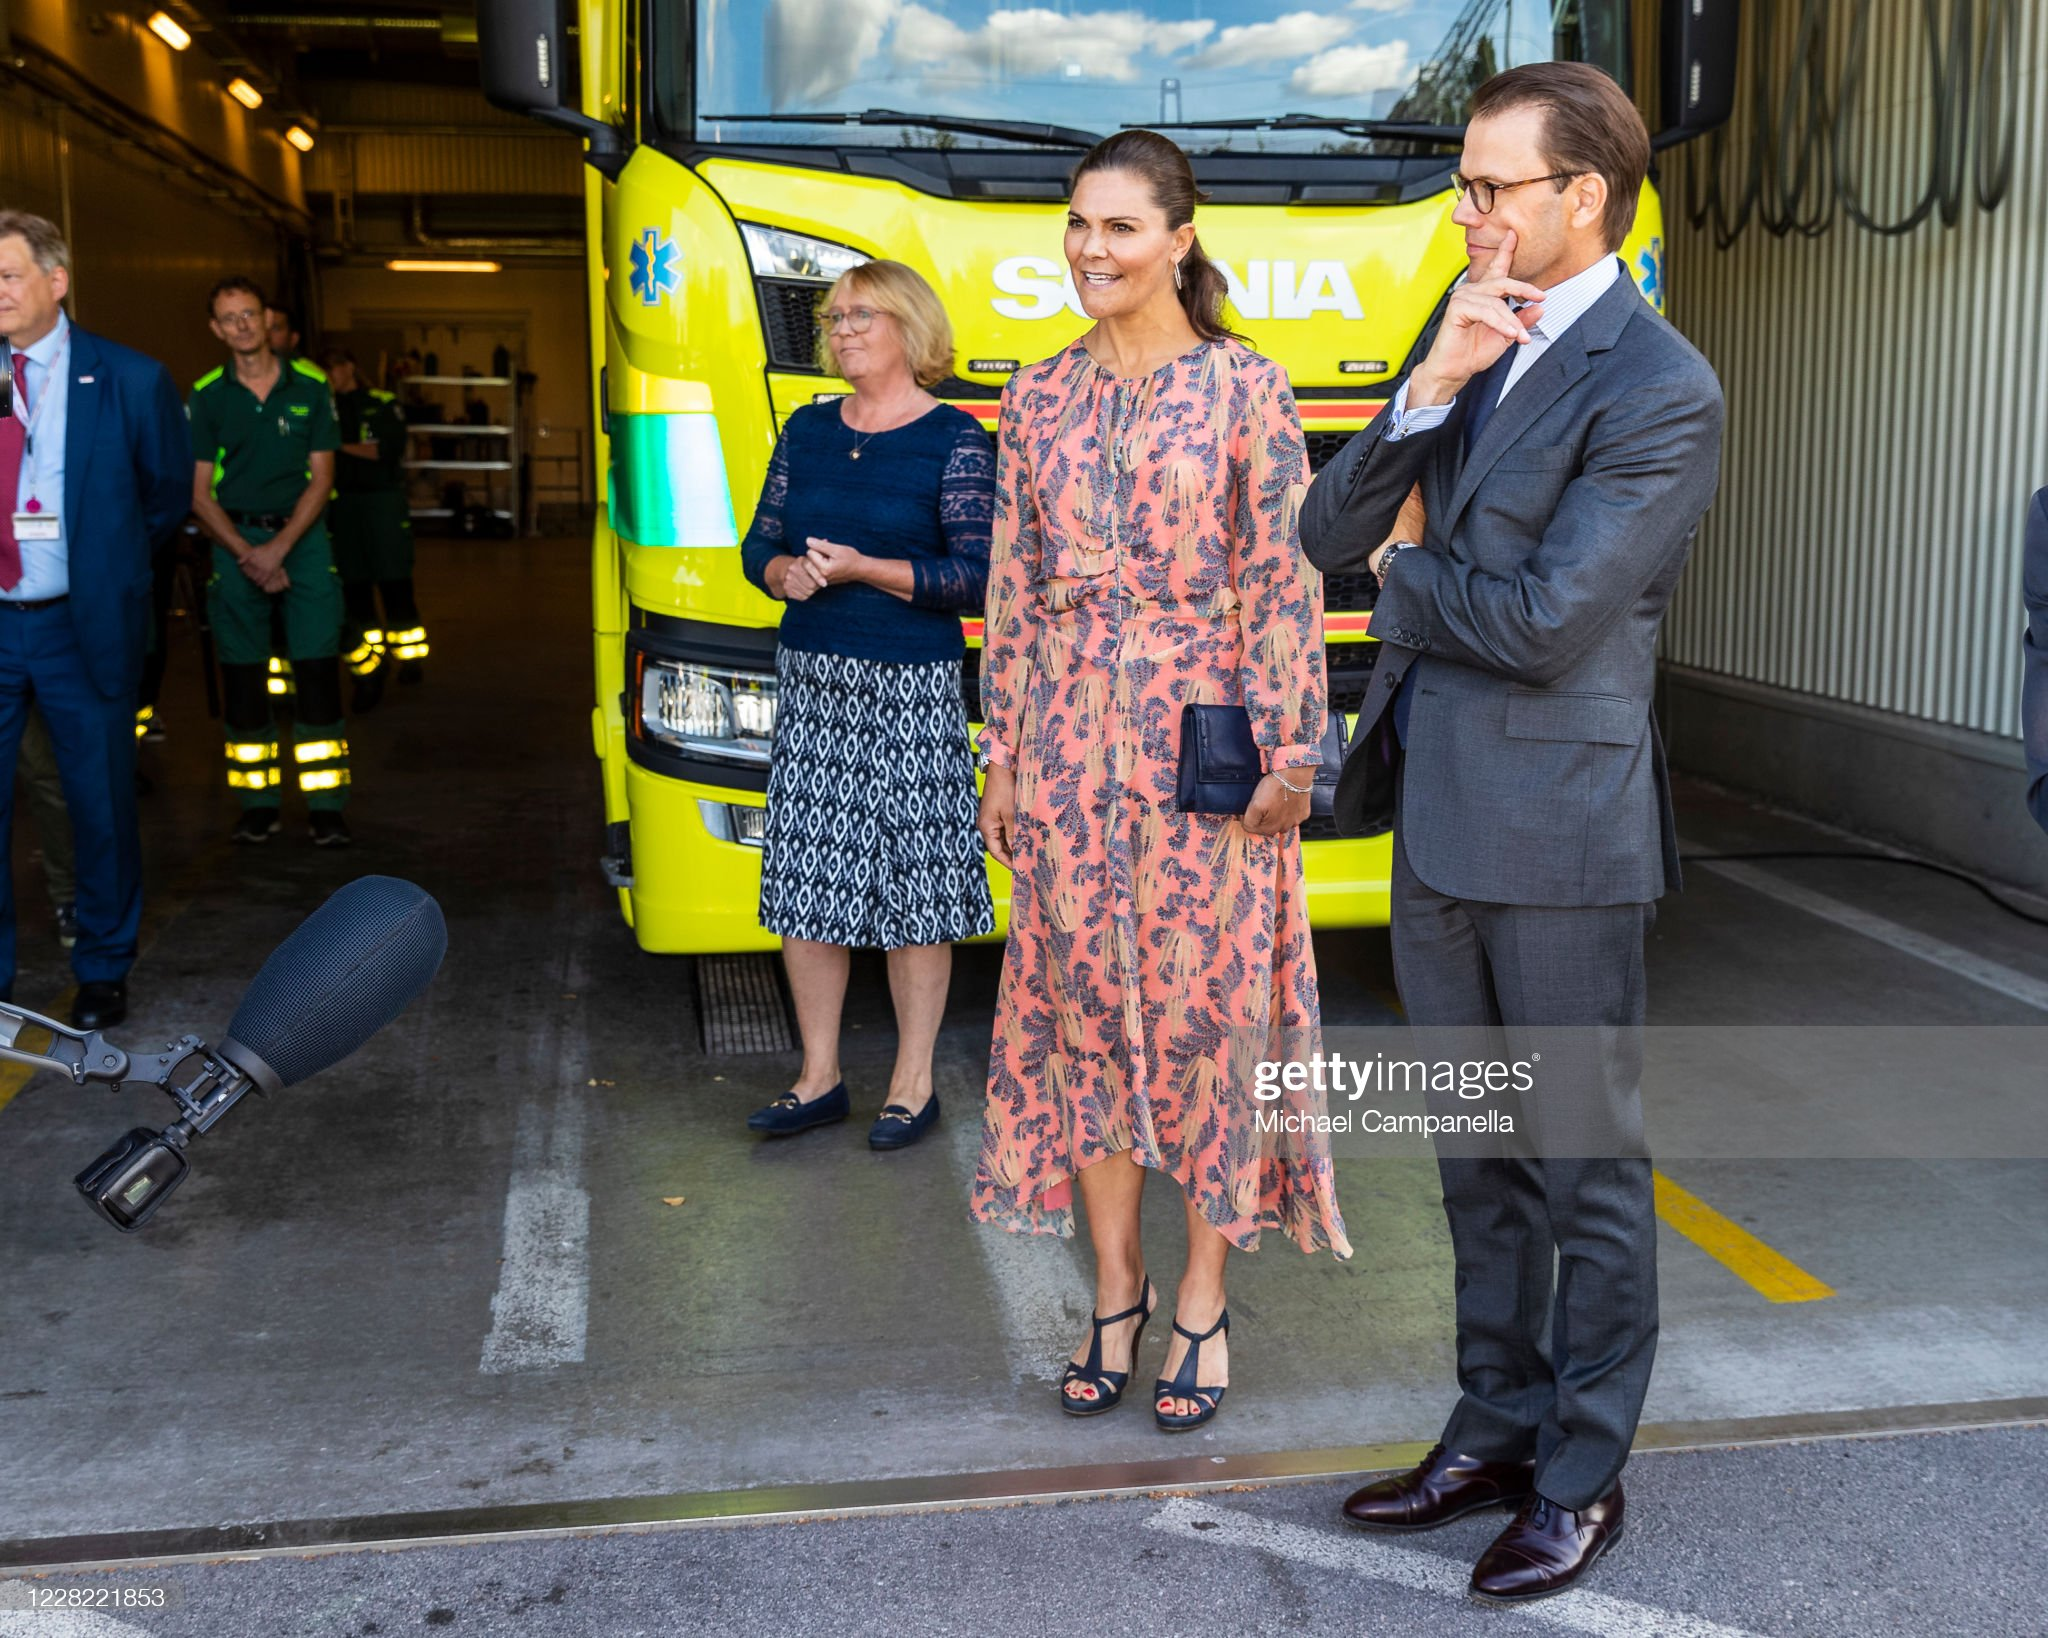 crown-princess-victoria-and-prince-daniel-of-sweden-visit-an-station-picture-id1228221853